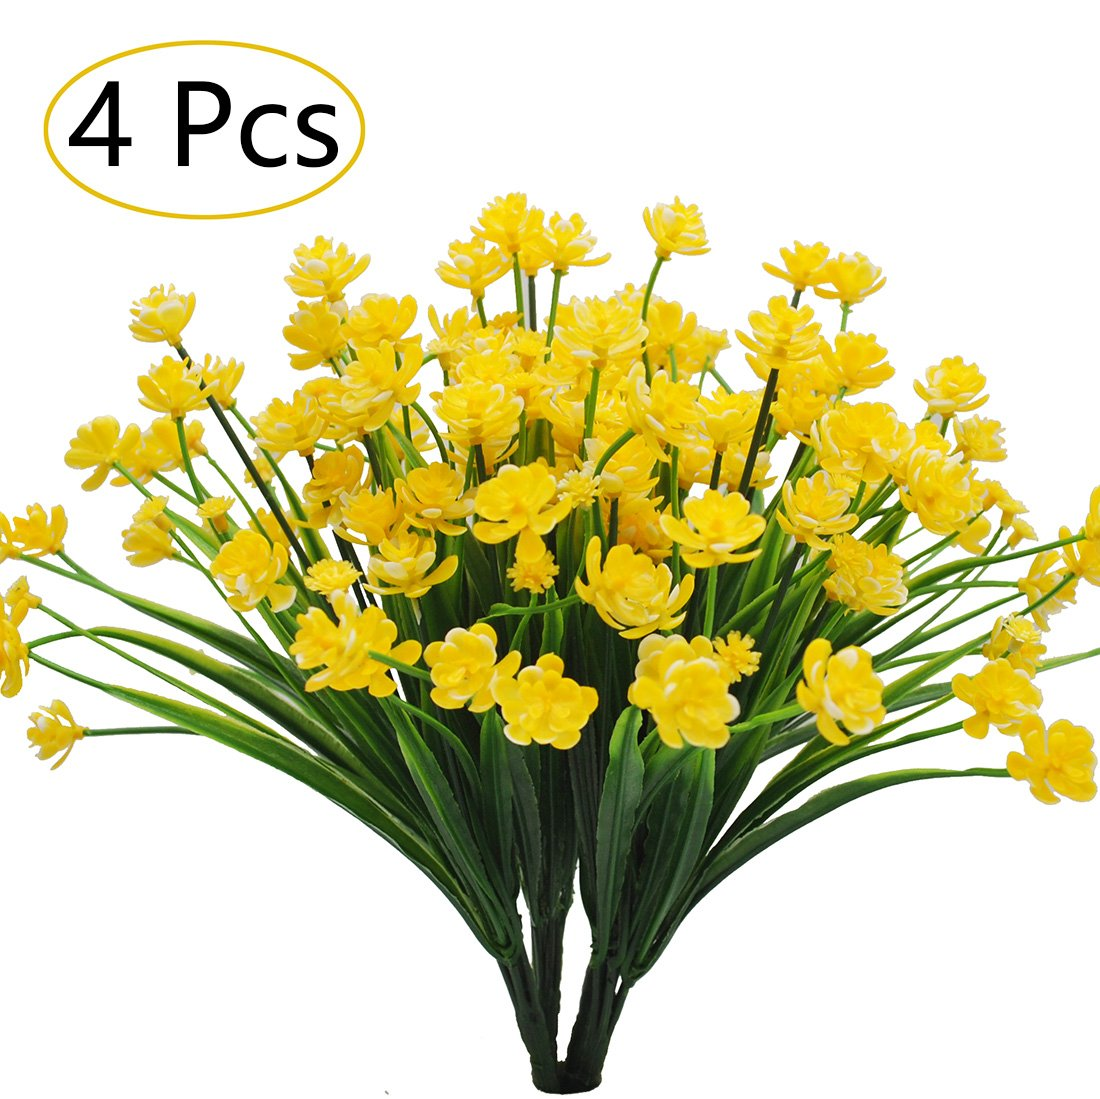 Artificial Flowers Faux Plants Greenery Shrubs Plant Plastic Bushes for House Office Wedding Garden Patio Indoor Outdoor Decor 4pcs Yellow